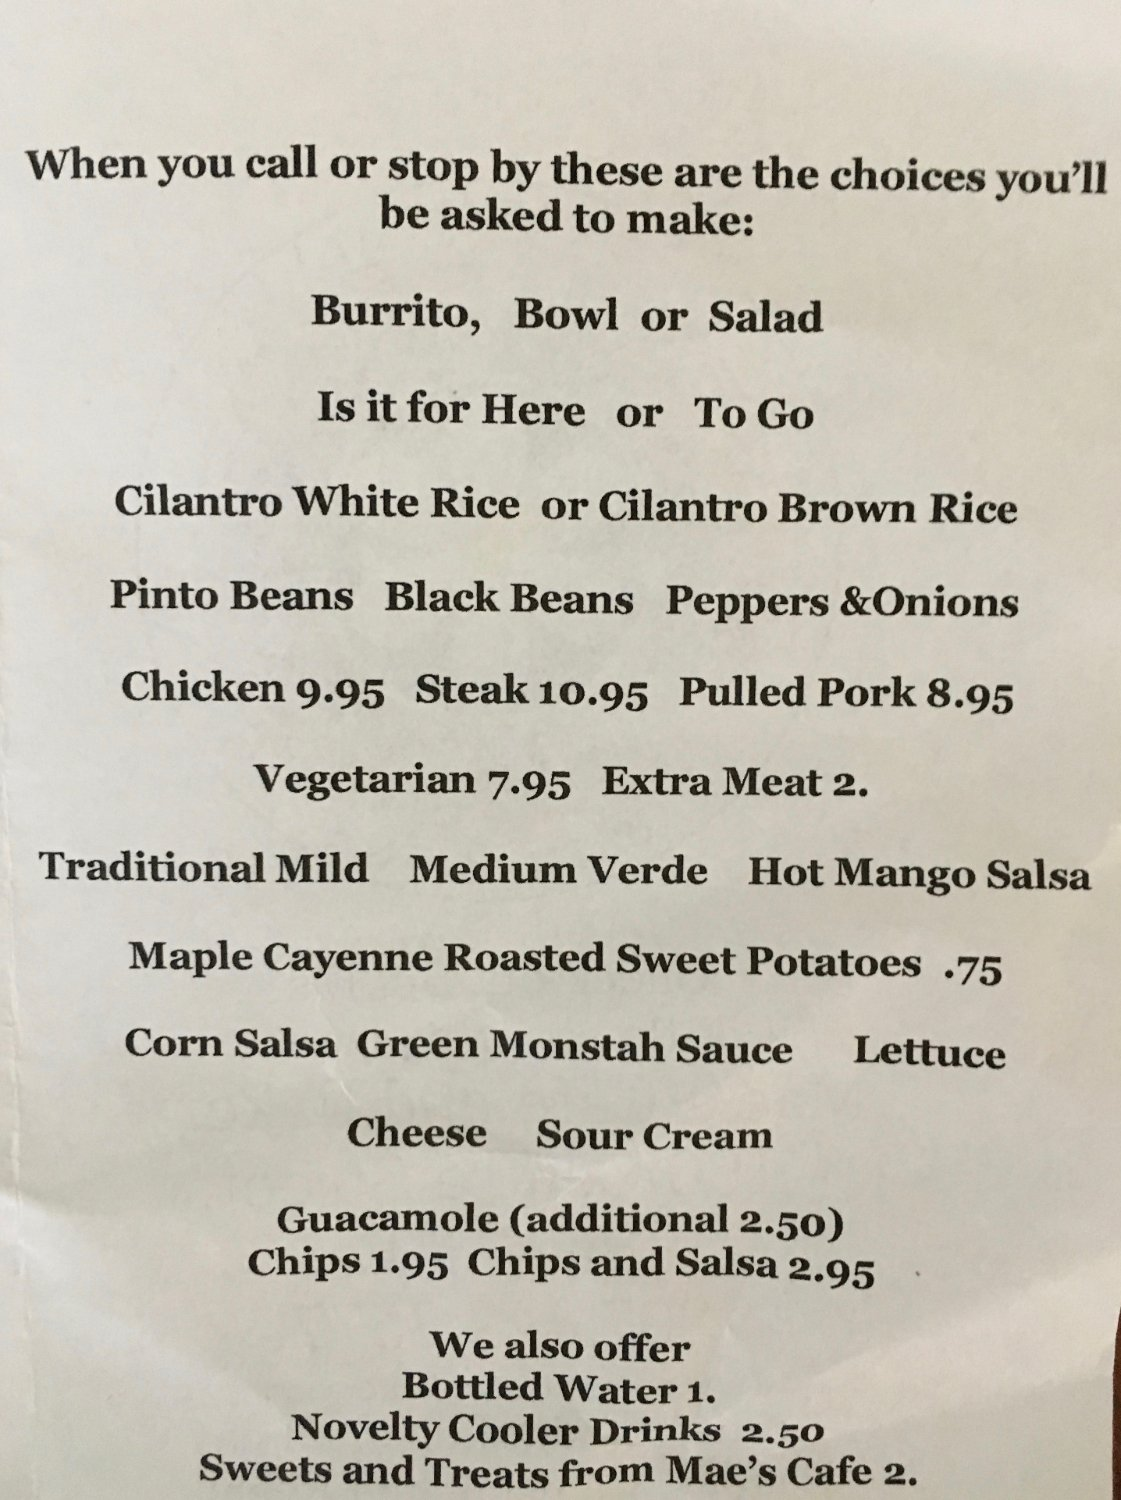 Menu that you order from.